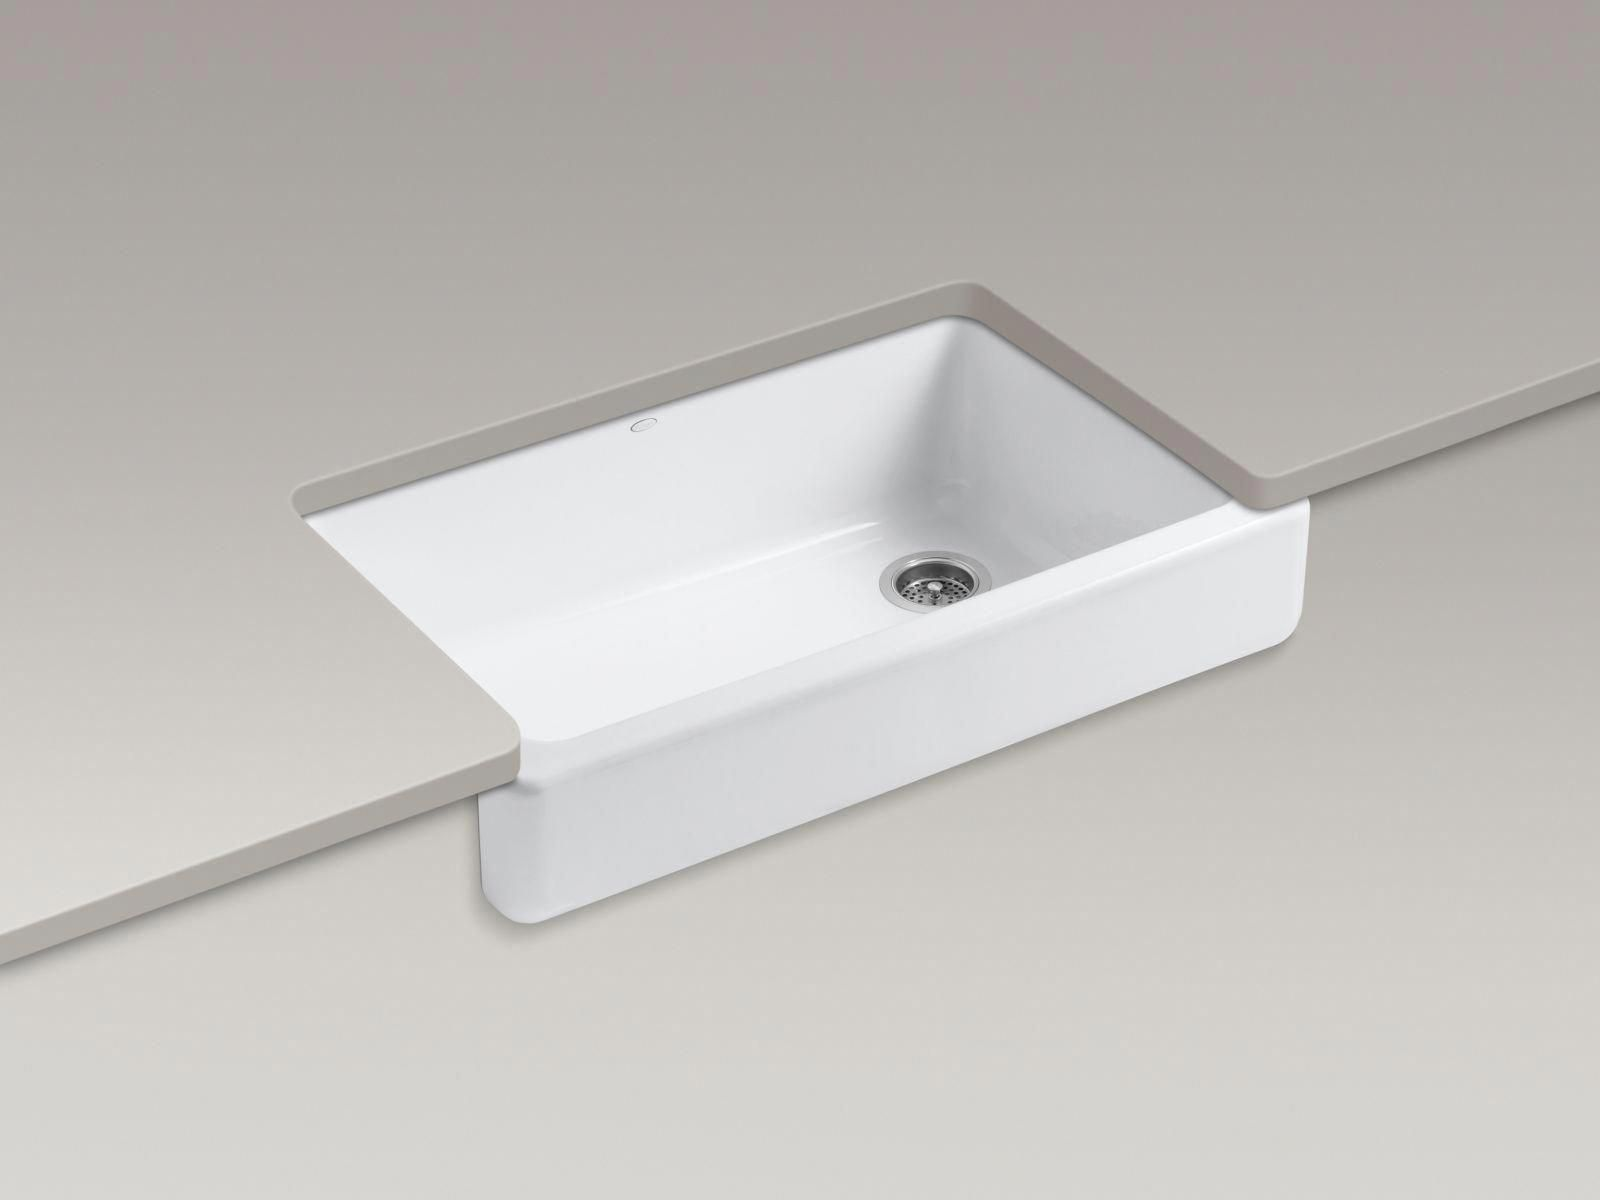 Trendy Concepts To Experiment With Artisansink